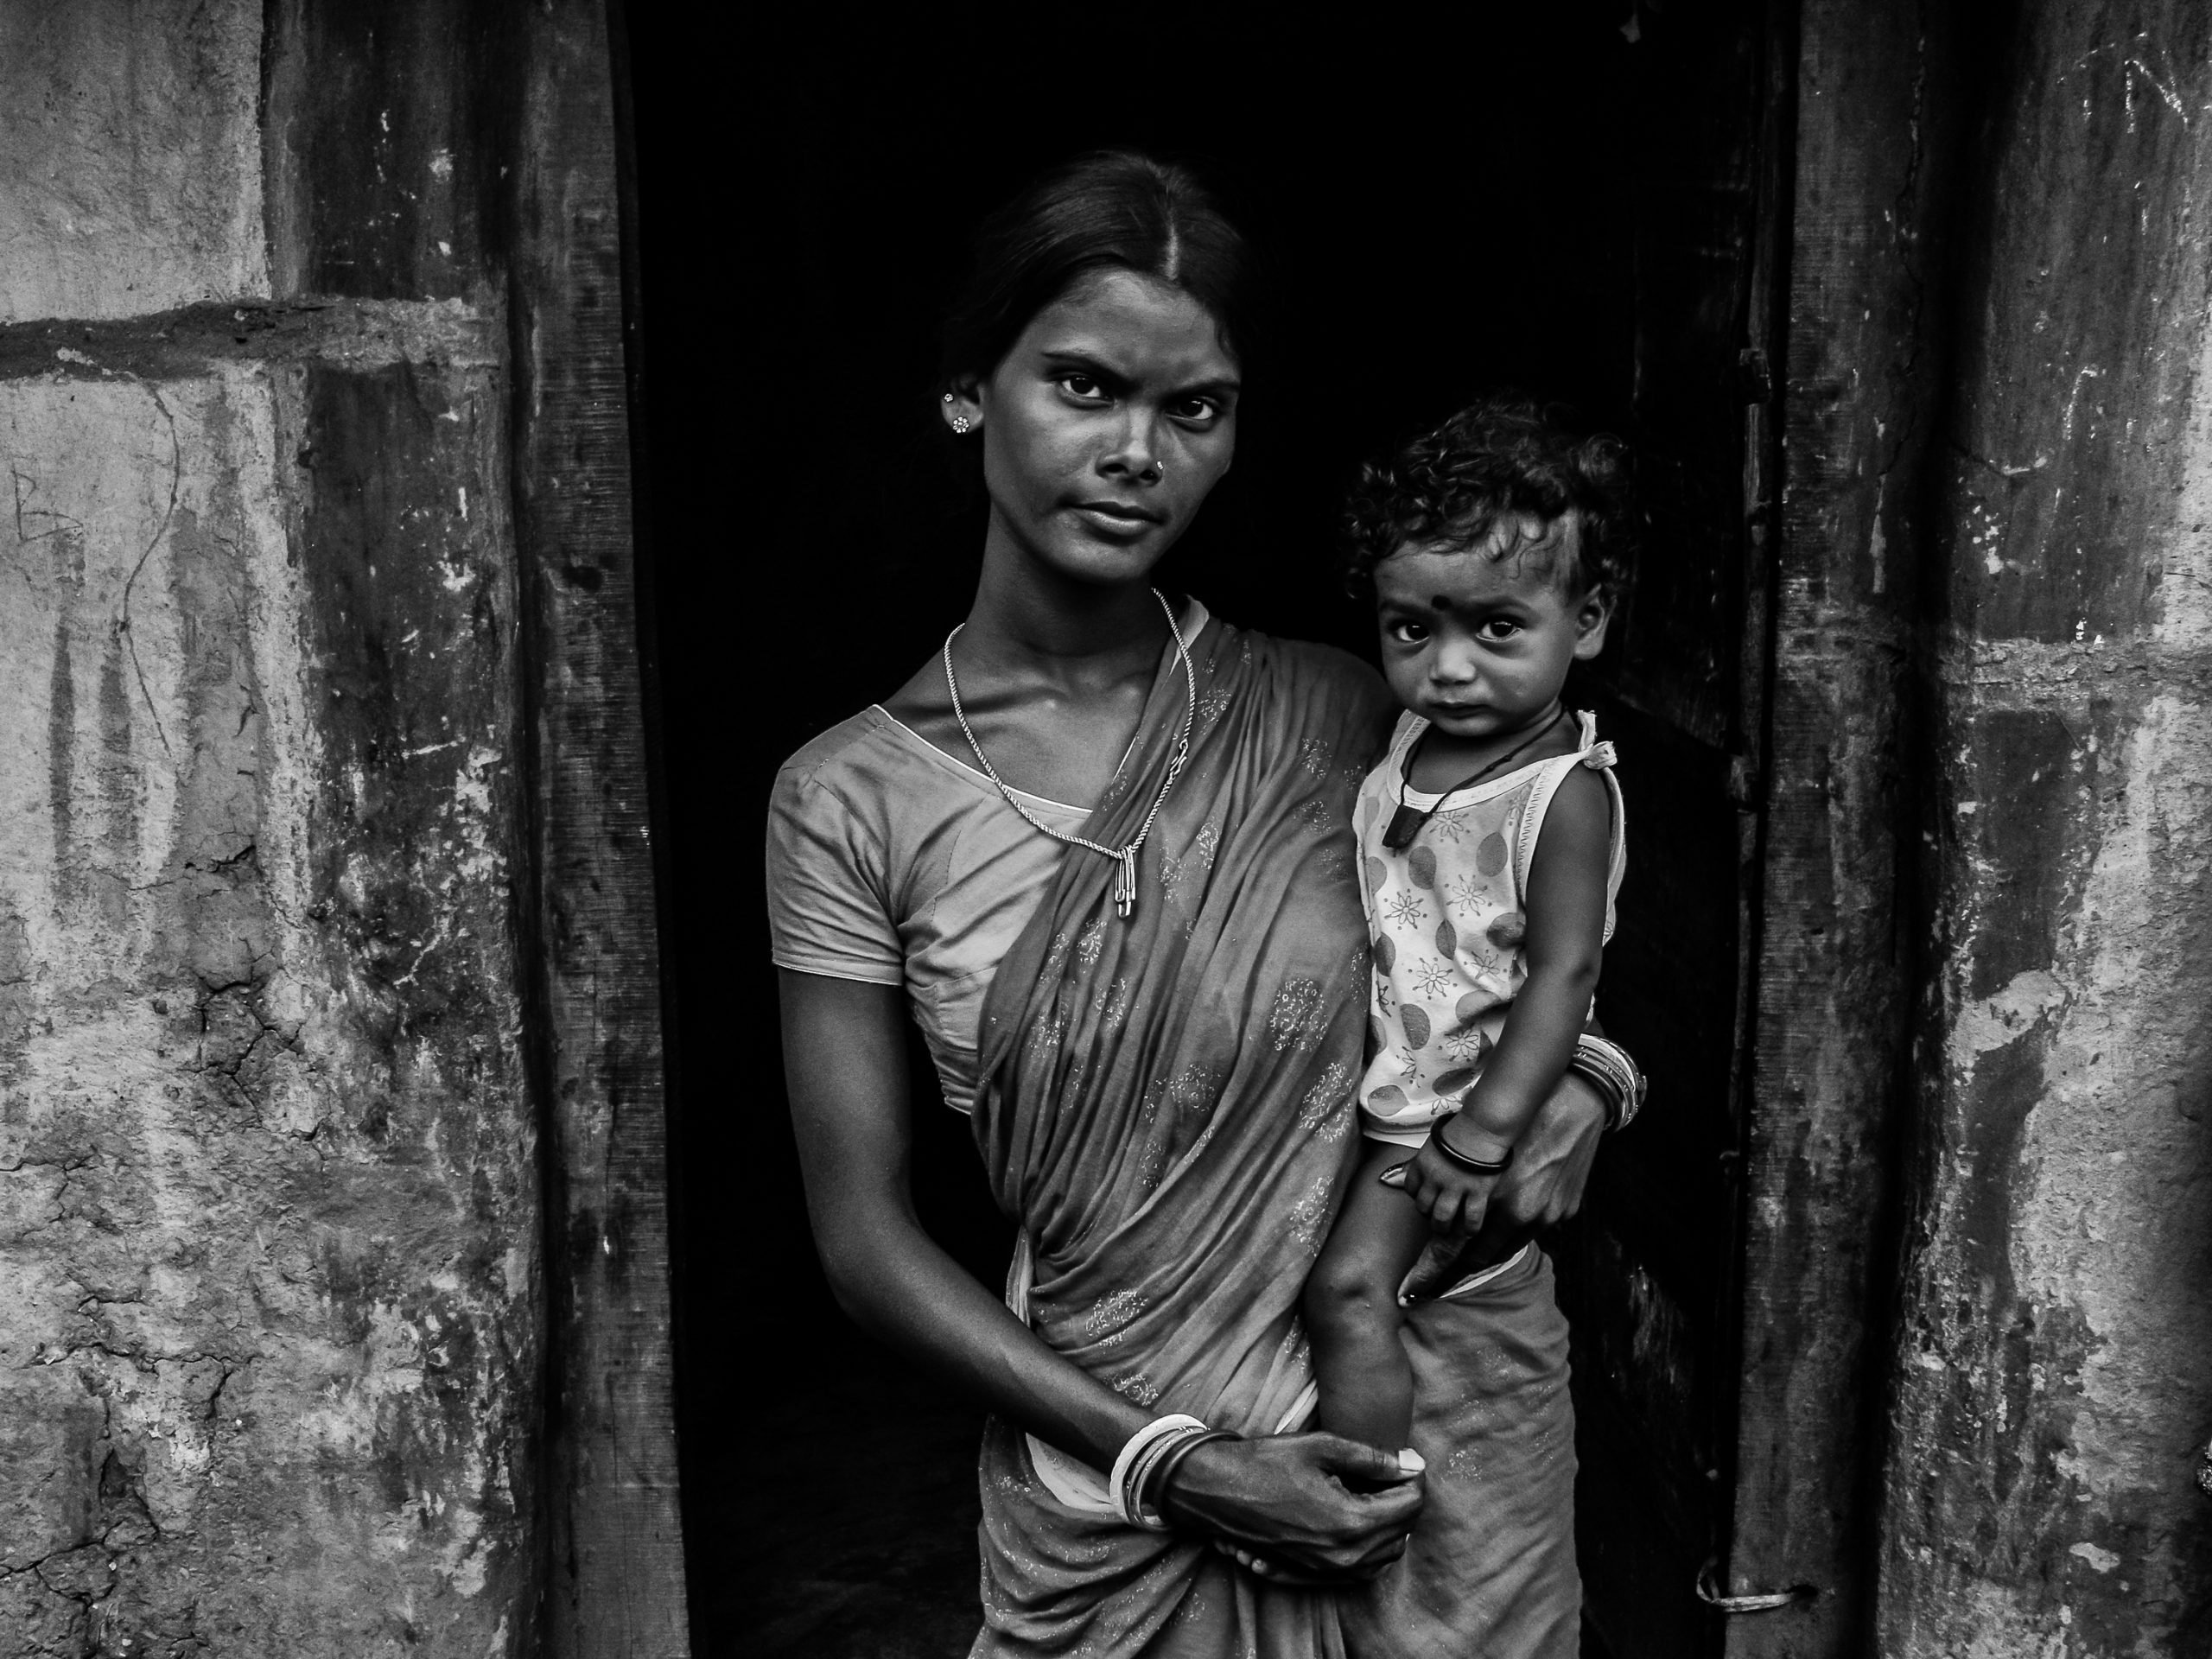 Startling image showing a mother and daughter.